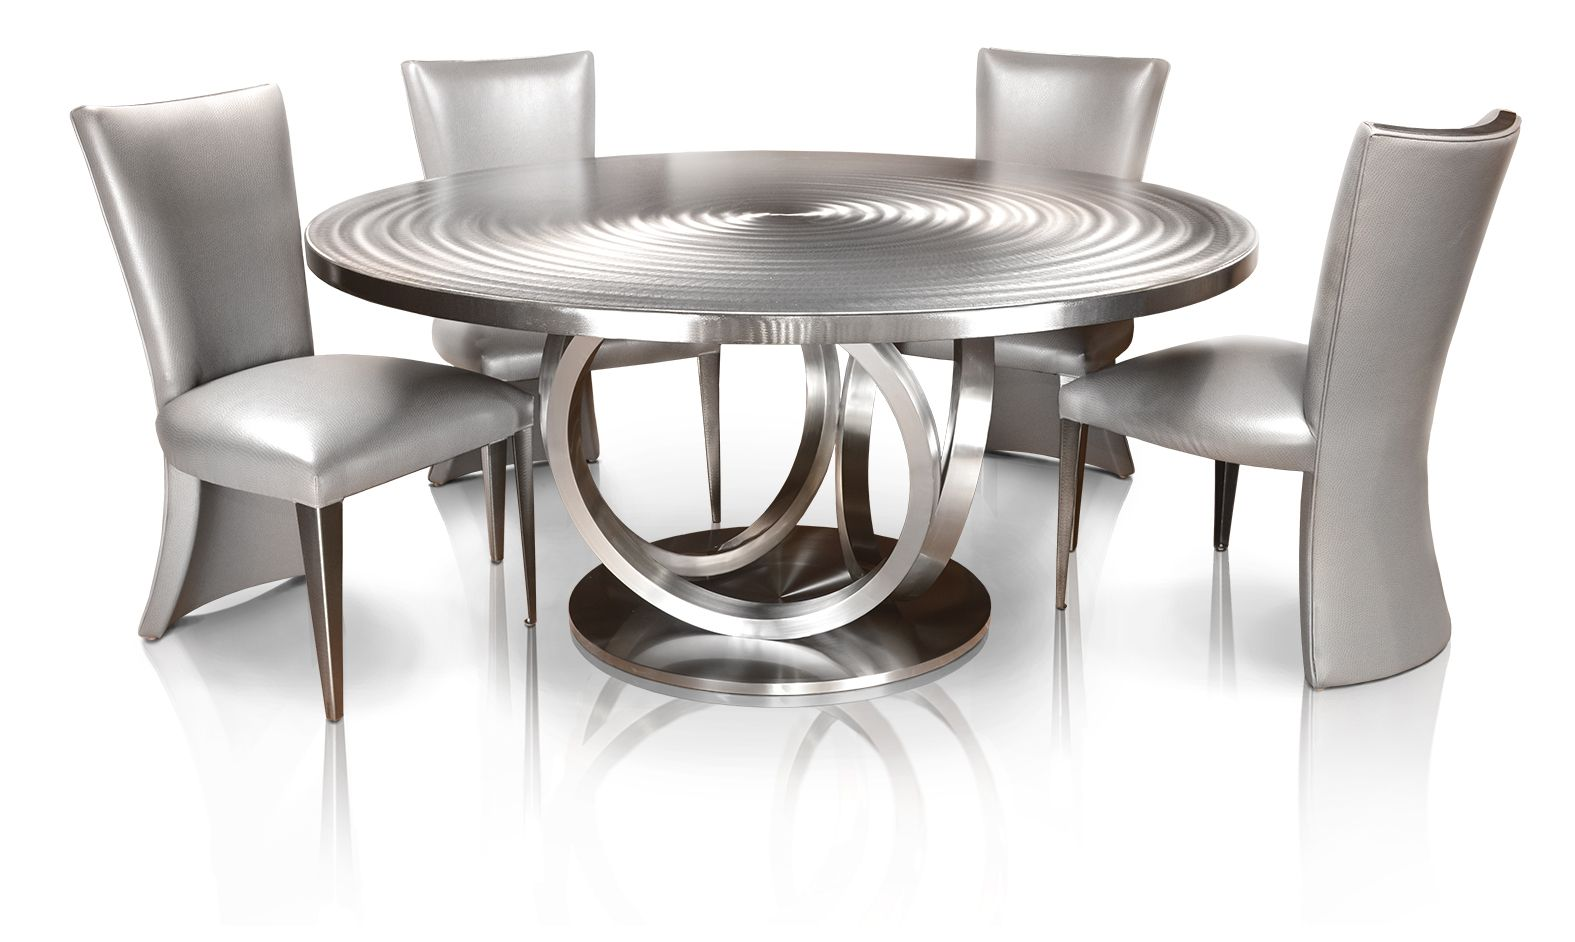 "Stainless Steel Dining Room Tables Delectable 66"" Round Stainless Steel Metal Dining Tableoios Metals  Oios Inspiration Design"